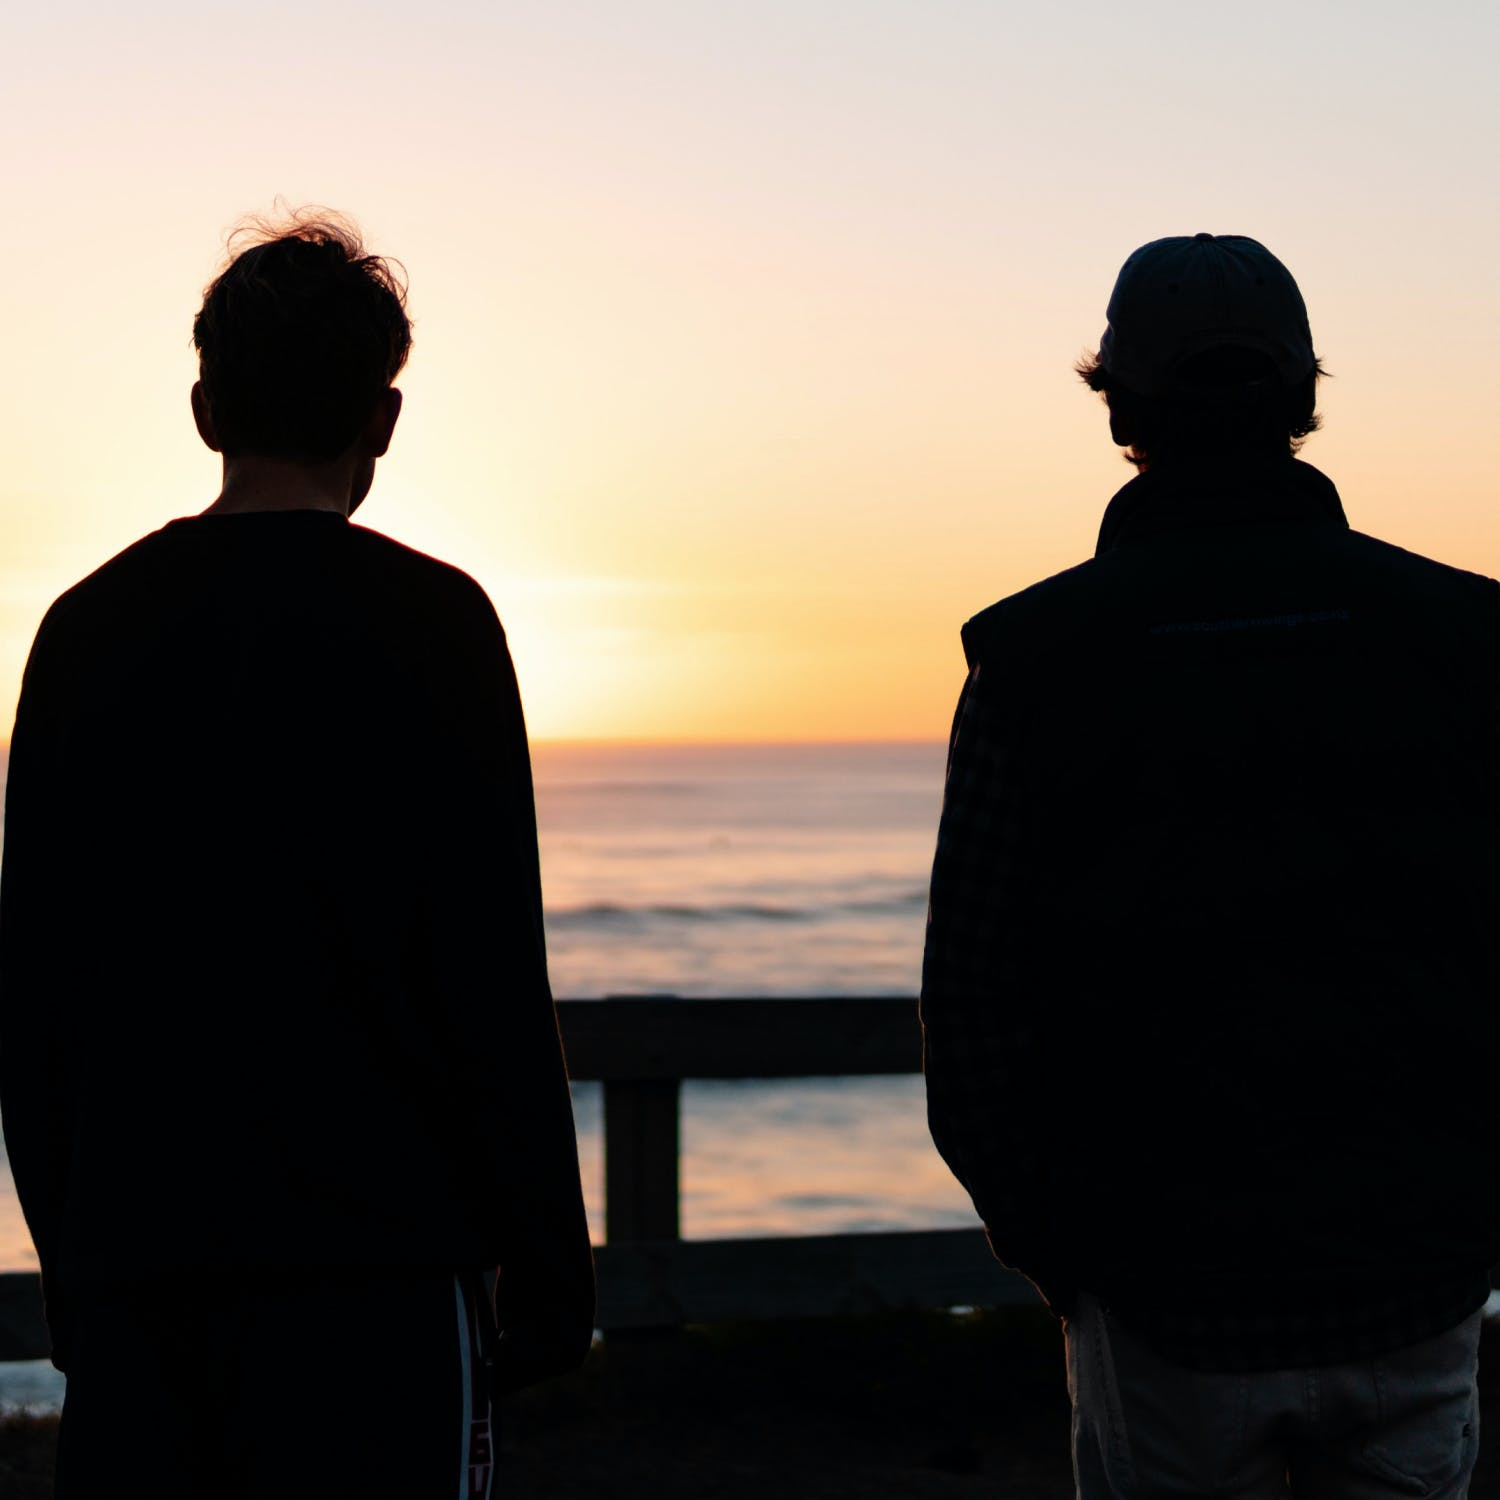 Two people's silhouettes, staring out at the sunset over an ocean.